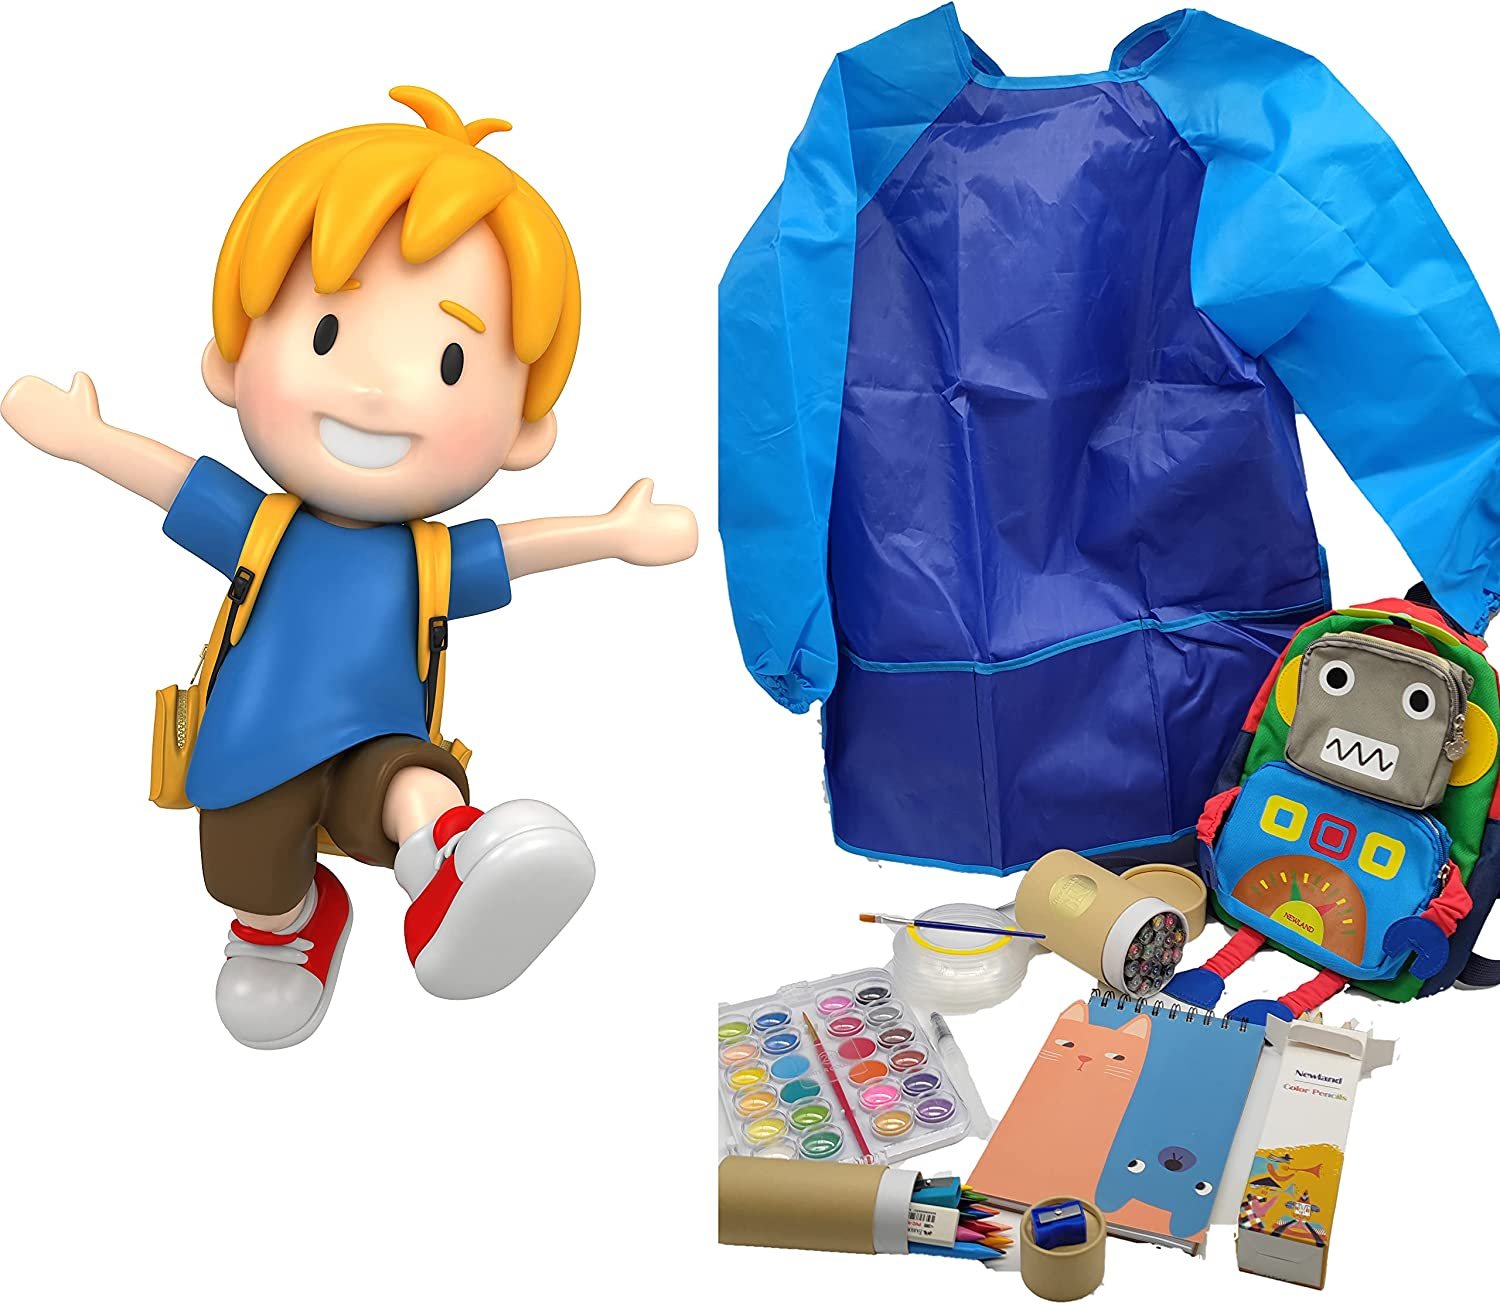 NEWLAND Kid Art Set Travel Cray Backpack131pcs Sale Bargain SALE% OFF Kit with Drawing